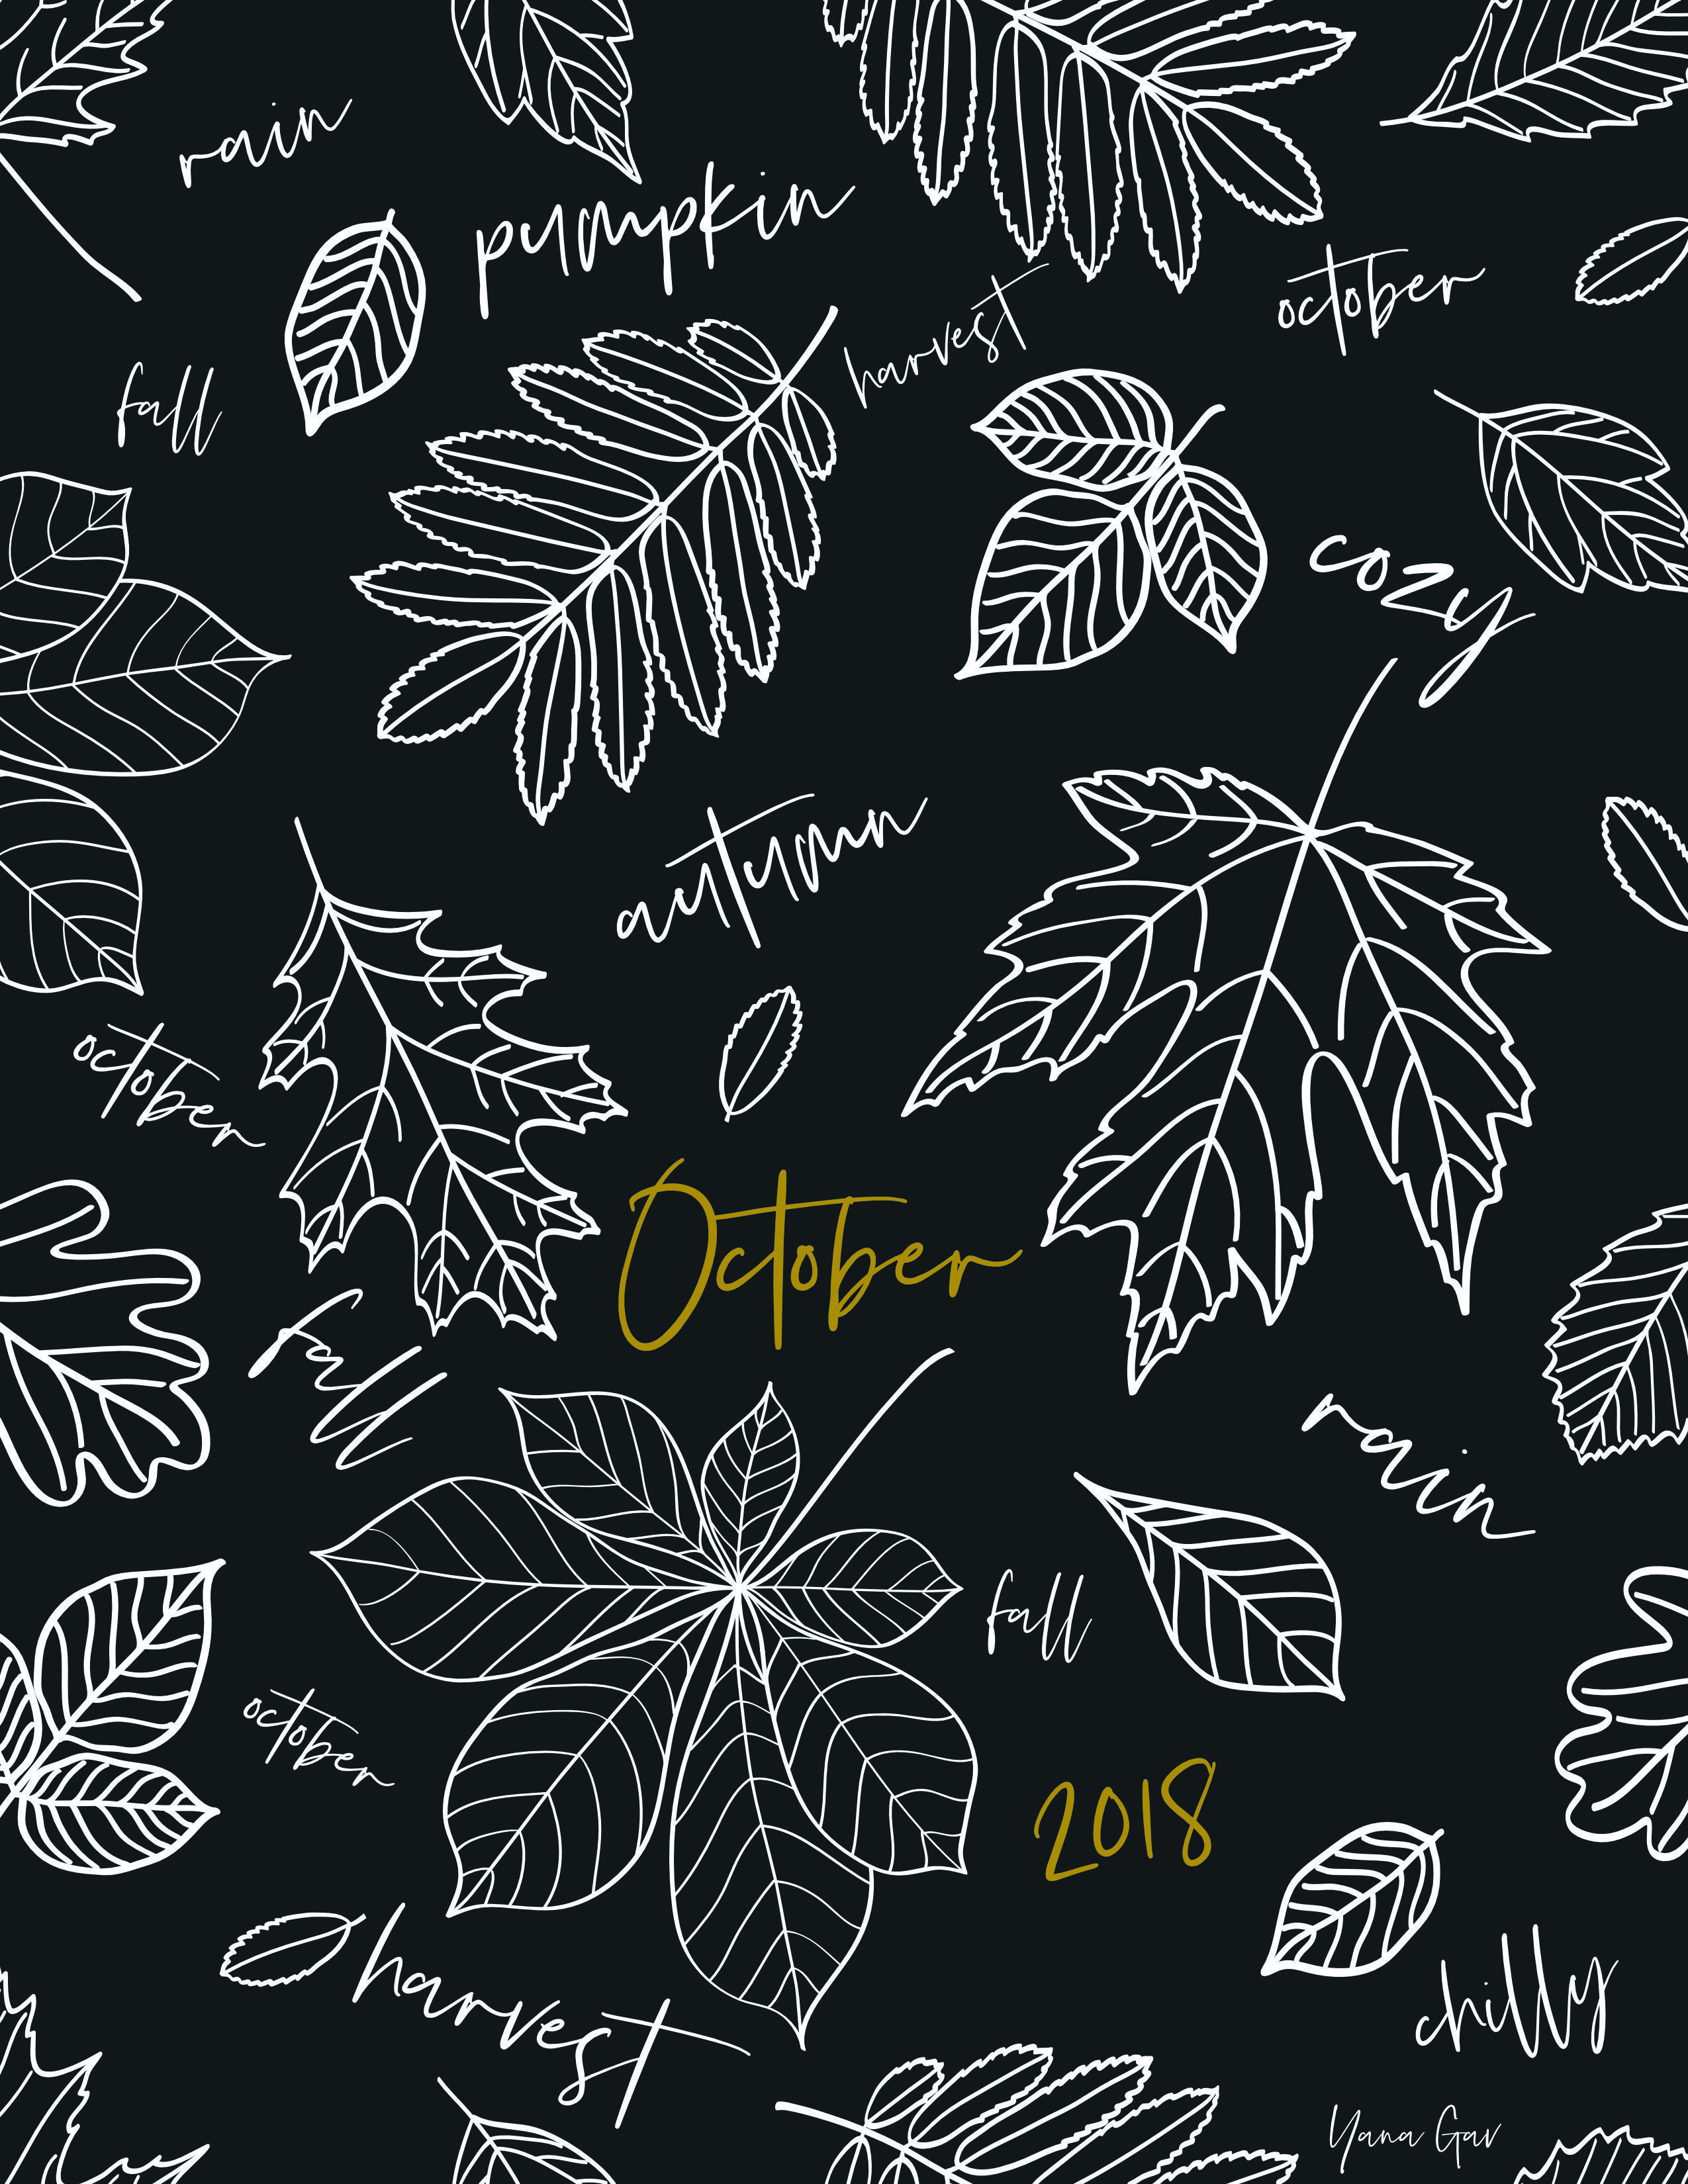 printable, 2018, fall, october, wallpaper, iphone wallpaper, neutral, quote, autumn, thanksgiving #octoberwallpaperiphone printable, 2018, fall, october, wallpaper, iphone wallpaper, neutral, quote, autumn, thanksgiving #octoberwallpaper printable, 2018, fall, october, wallpaper, iphone wallpaper, neutral, quote, autumn, thanksgiving #octoberwallpaperiphone printable, 2018, fall, october, wallpaper, iphone wallpaper, neutral, quote, autumn, thanksgiving #falliphonewallpaper printable, 2018, fall #octoberwallpaperiphone